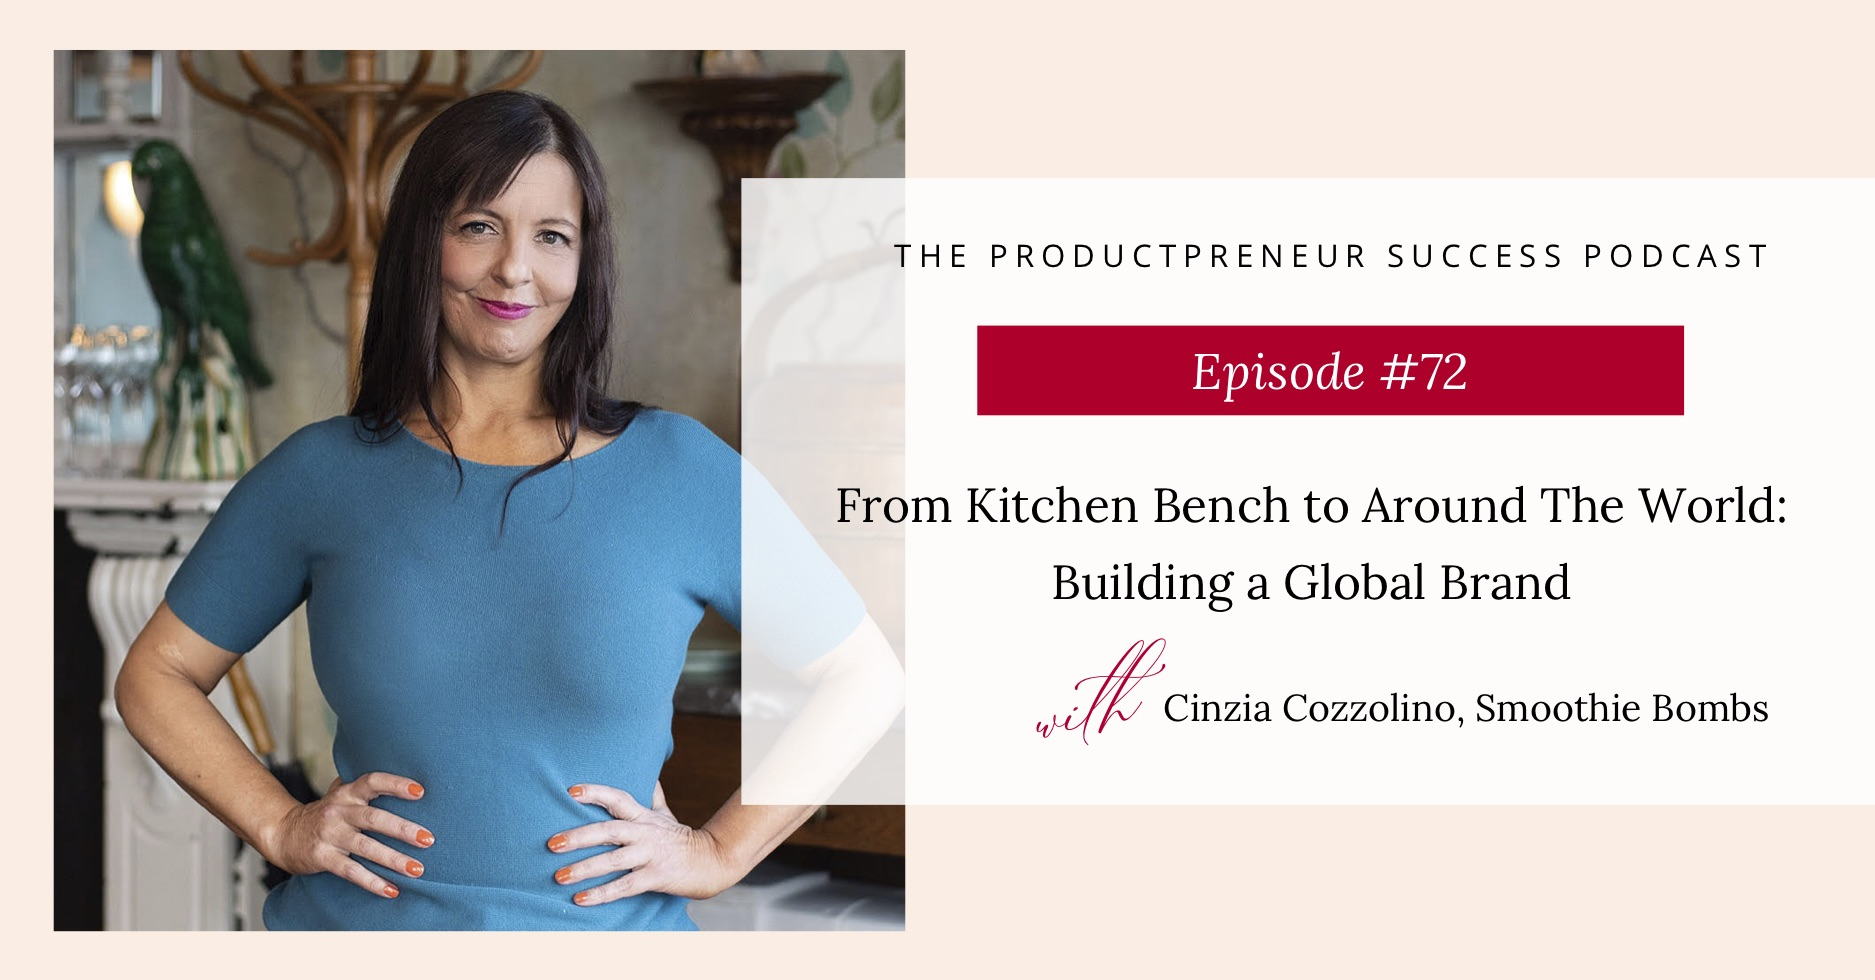 Podcast Graphic introducing Episode 72 with The Founder of The Smoothie Bombs Cinzia Cozzolino